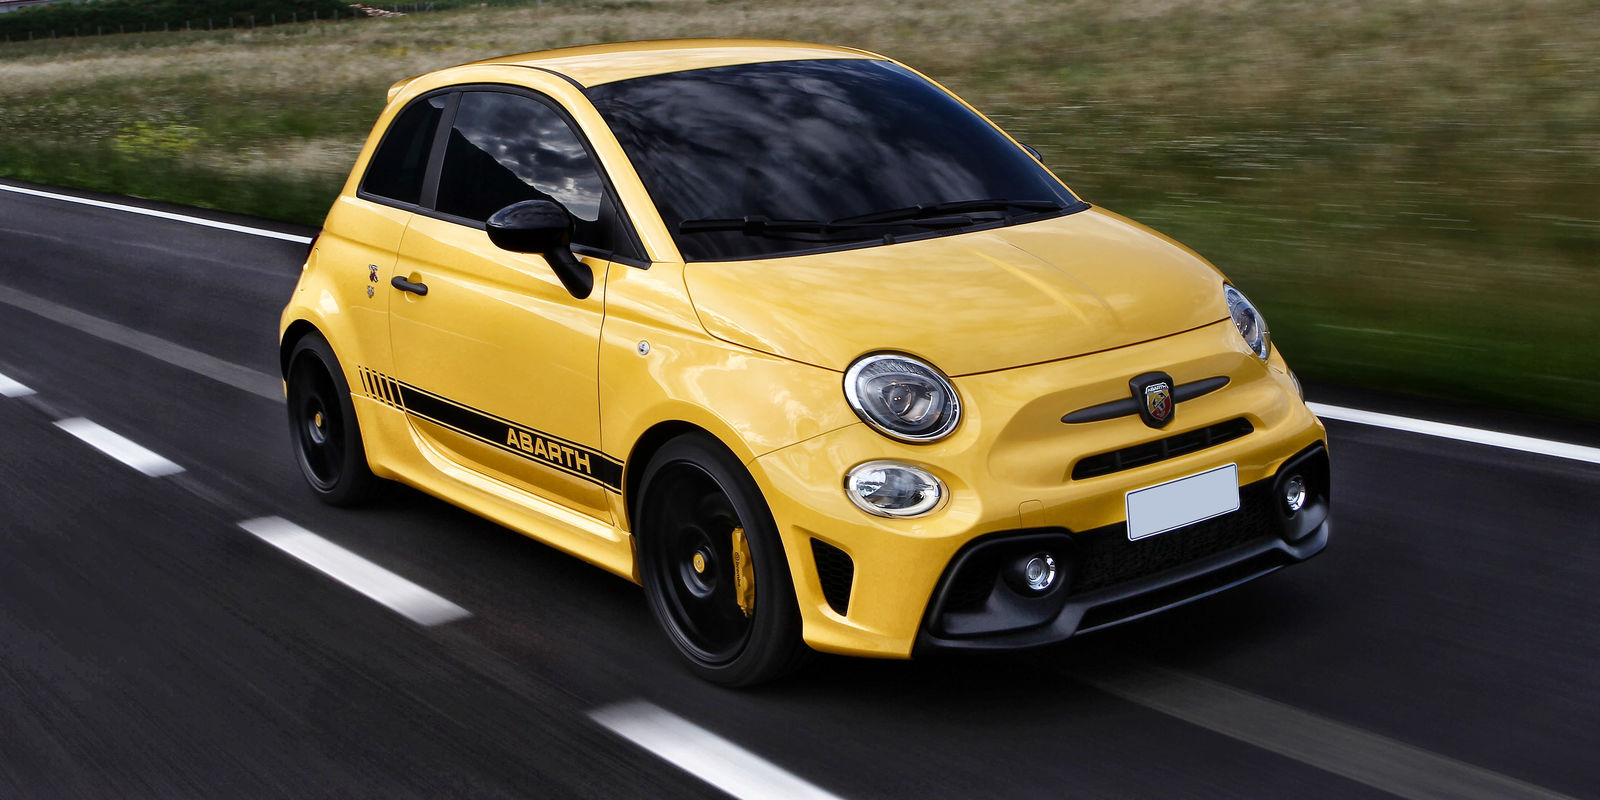 uk prices announced for new abarth 595 trofeo. Black Bedroom Furniture Sets. Home Design Ideas